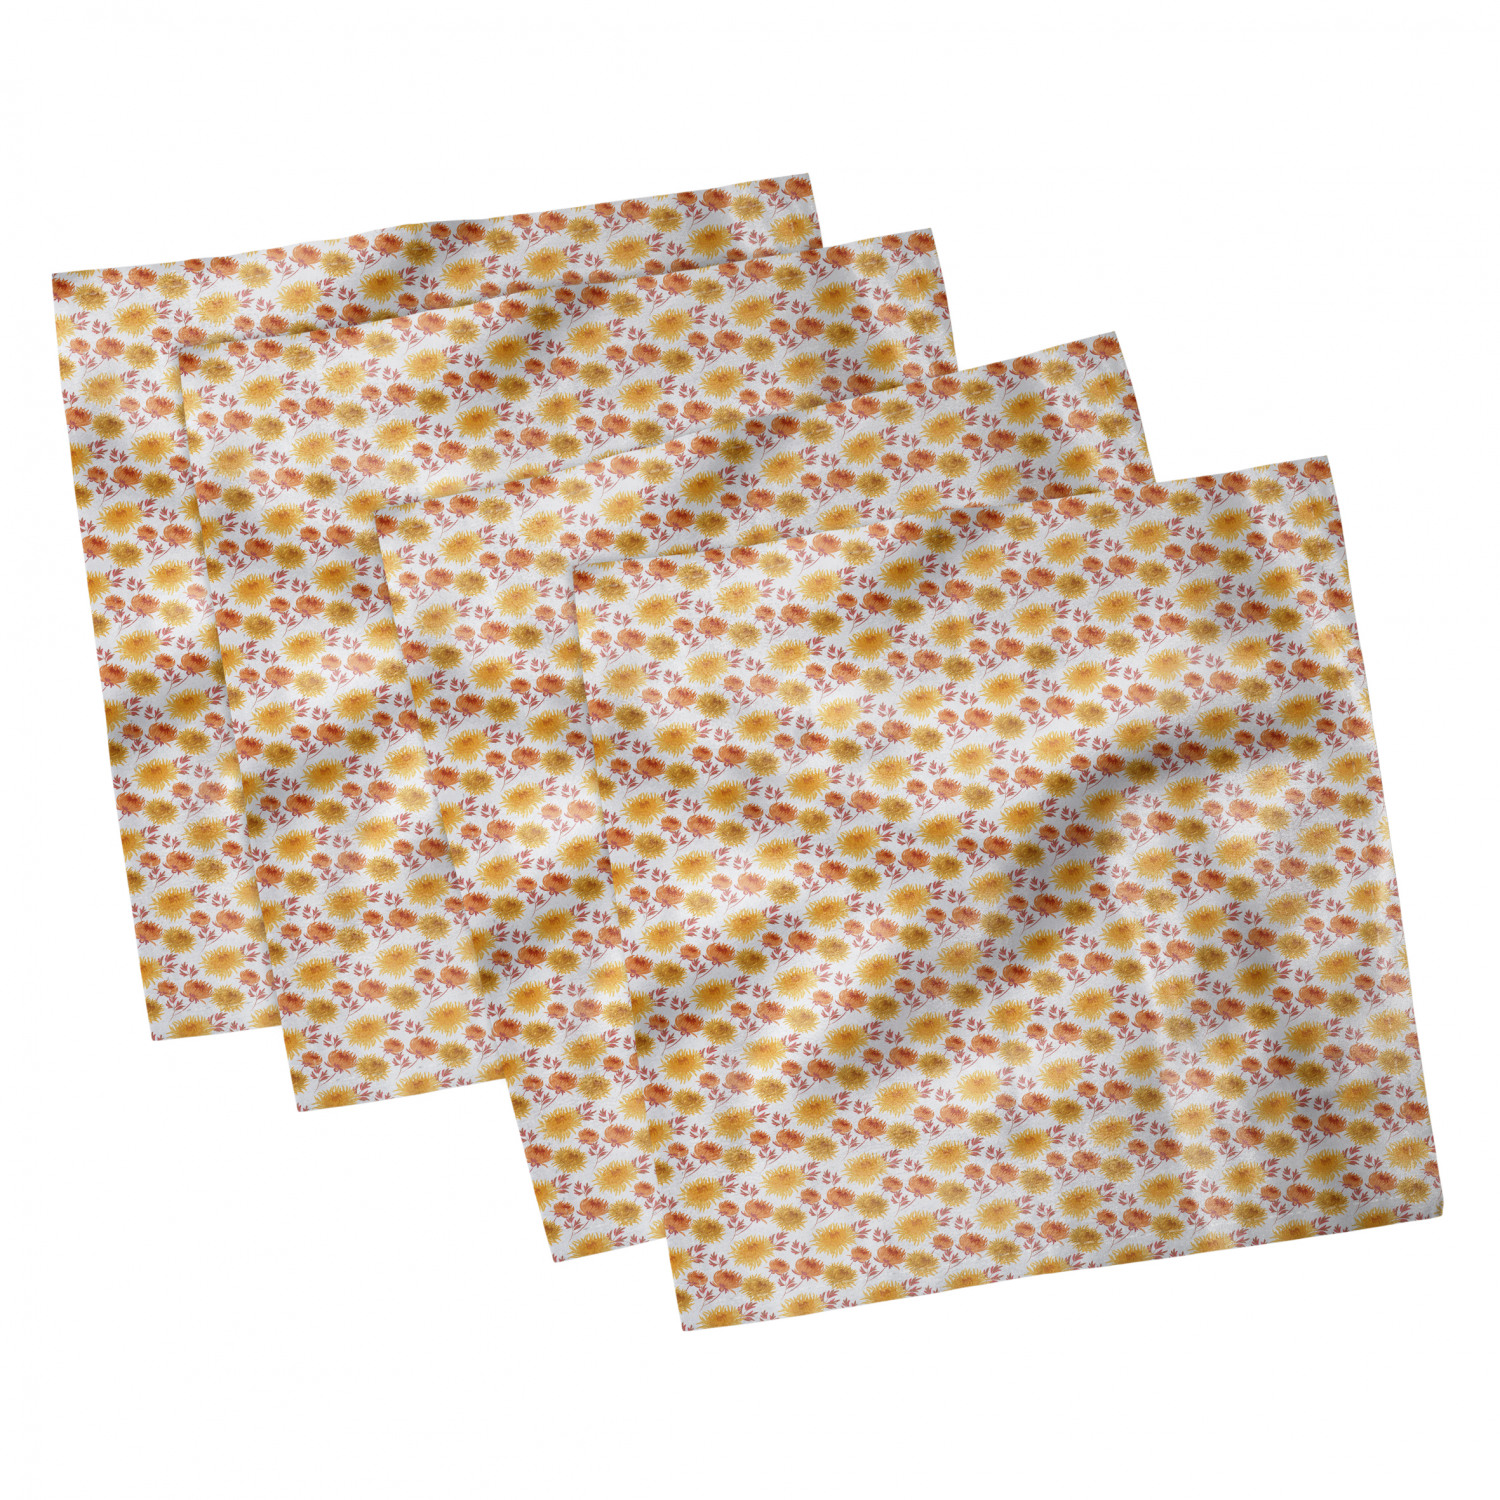 thumbnail 17 - Ambesonne-Autumn-Fall-Decorative-Satin-Napkins-Set-of-4-Party-Dinner-Fabric